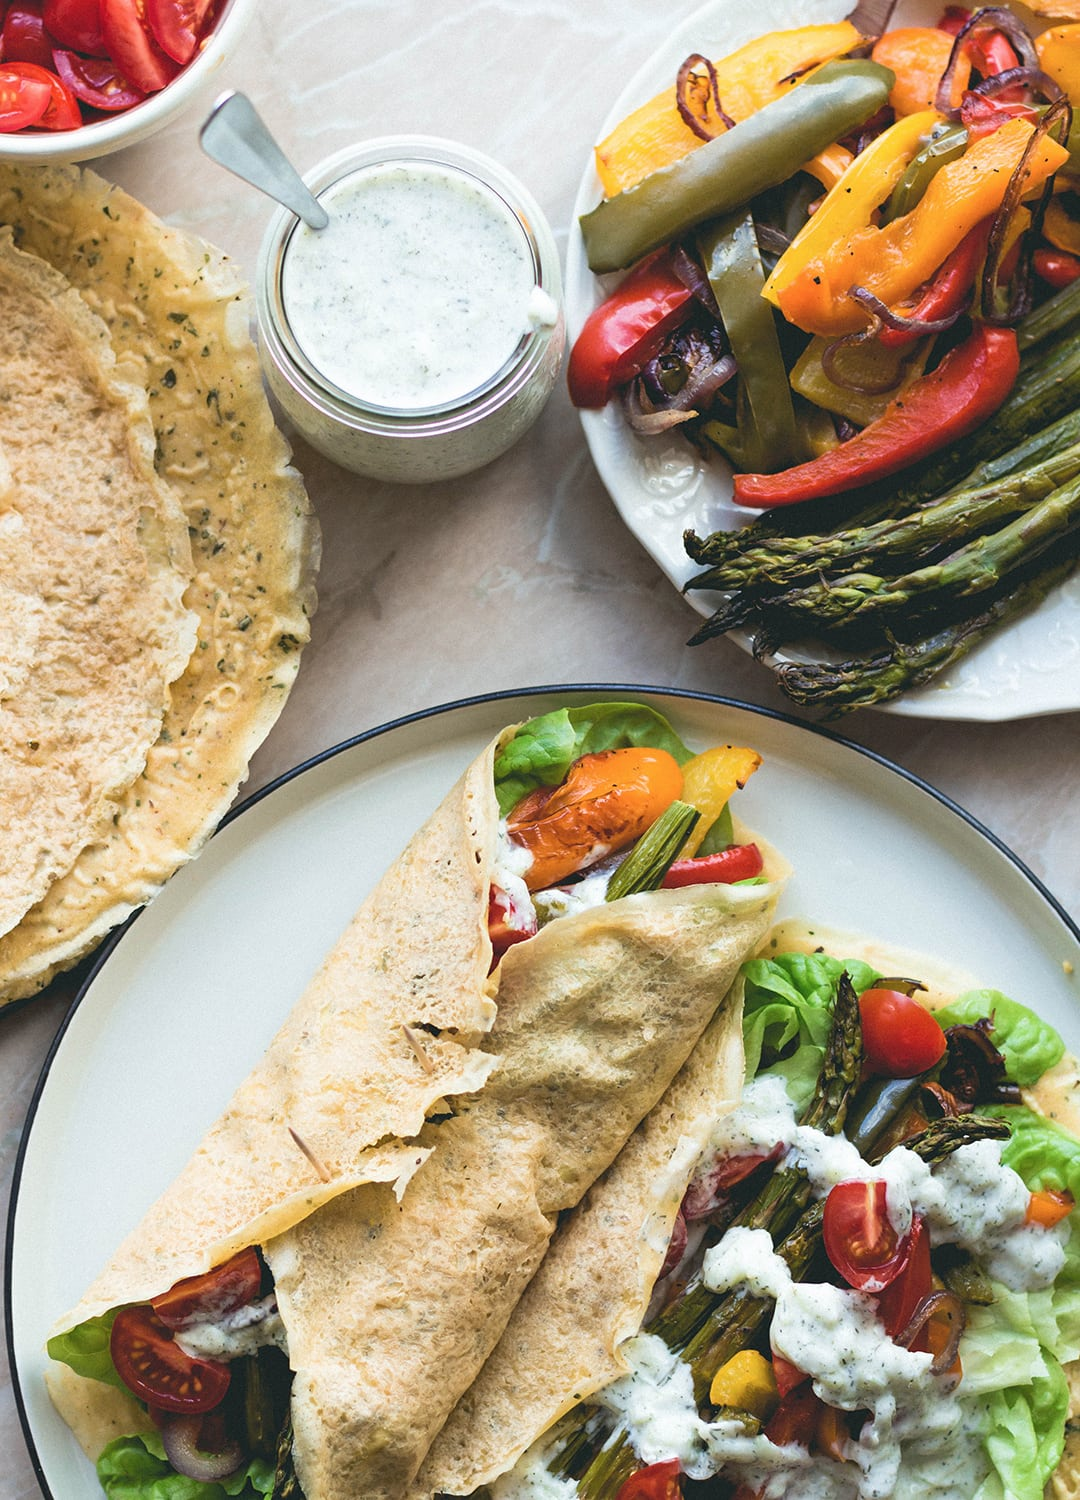 Chickpea Flour Crepes with Roasted Vegetables, fresh vegetables, and homemade sheep tzaziki! With a vegan option too! | thehealthfulideas.com